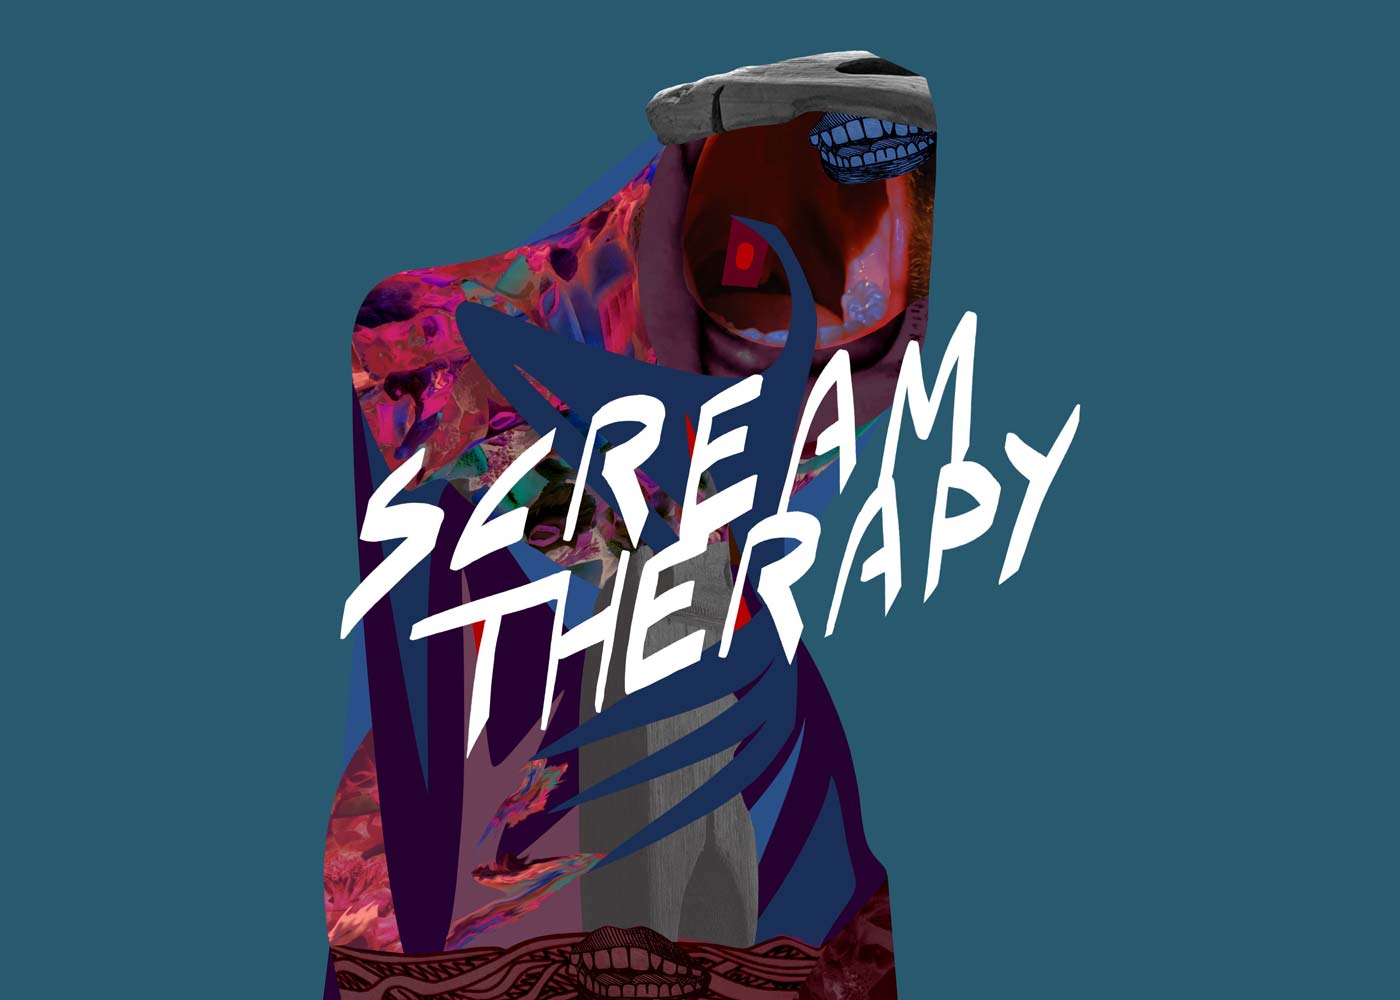 Scream Therapy